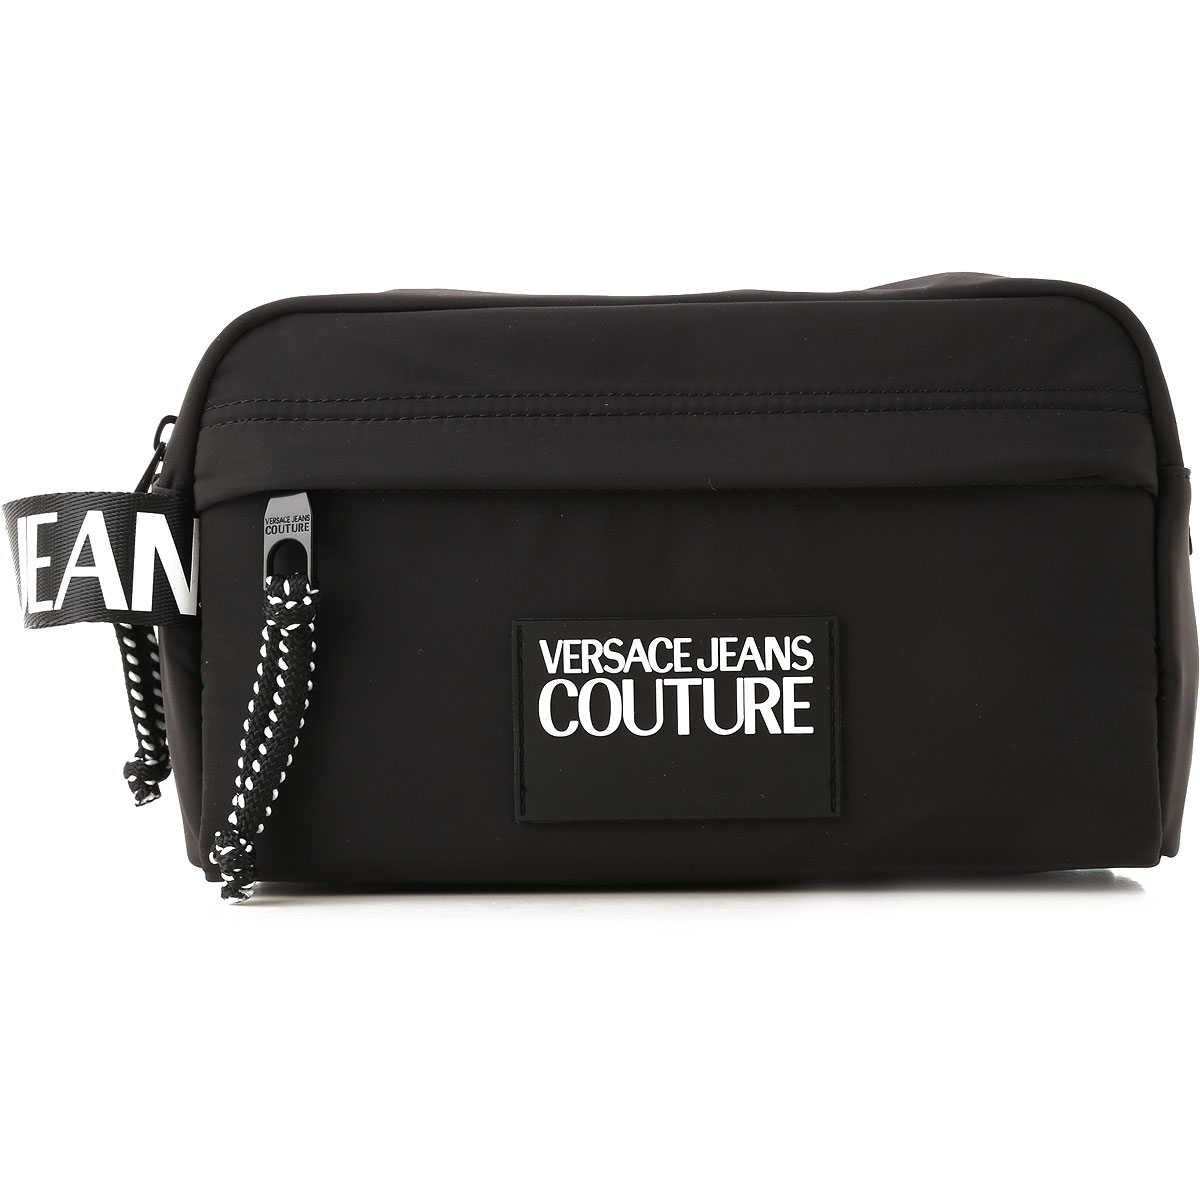 Versace Jeans Couture Toiletry Bag for Men On Sale, Black, Nylon, 2019